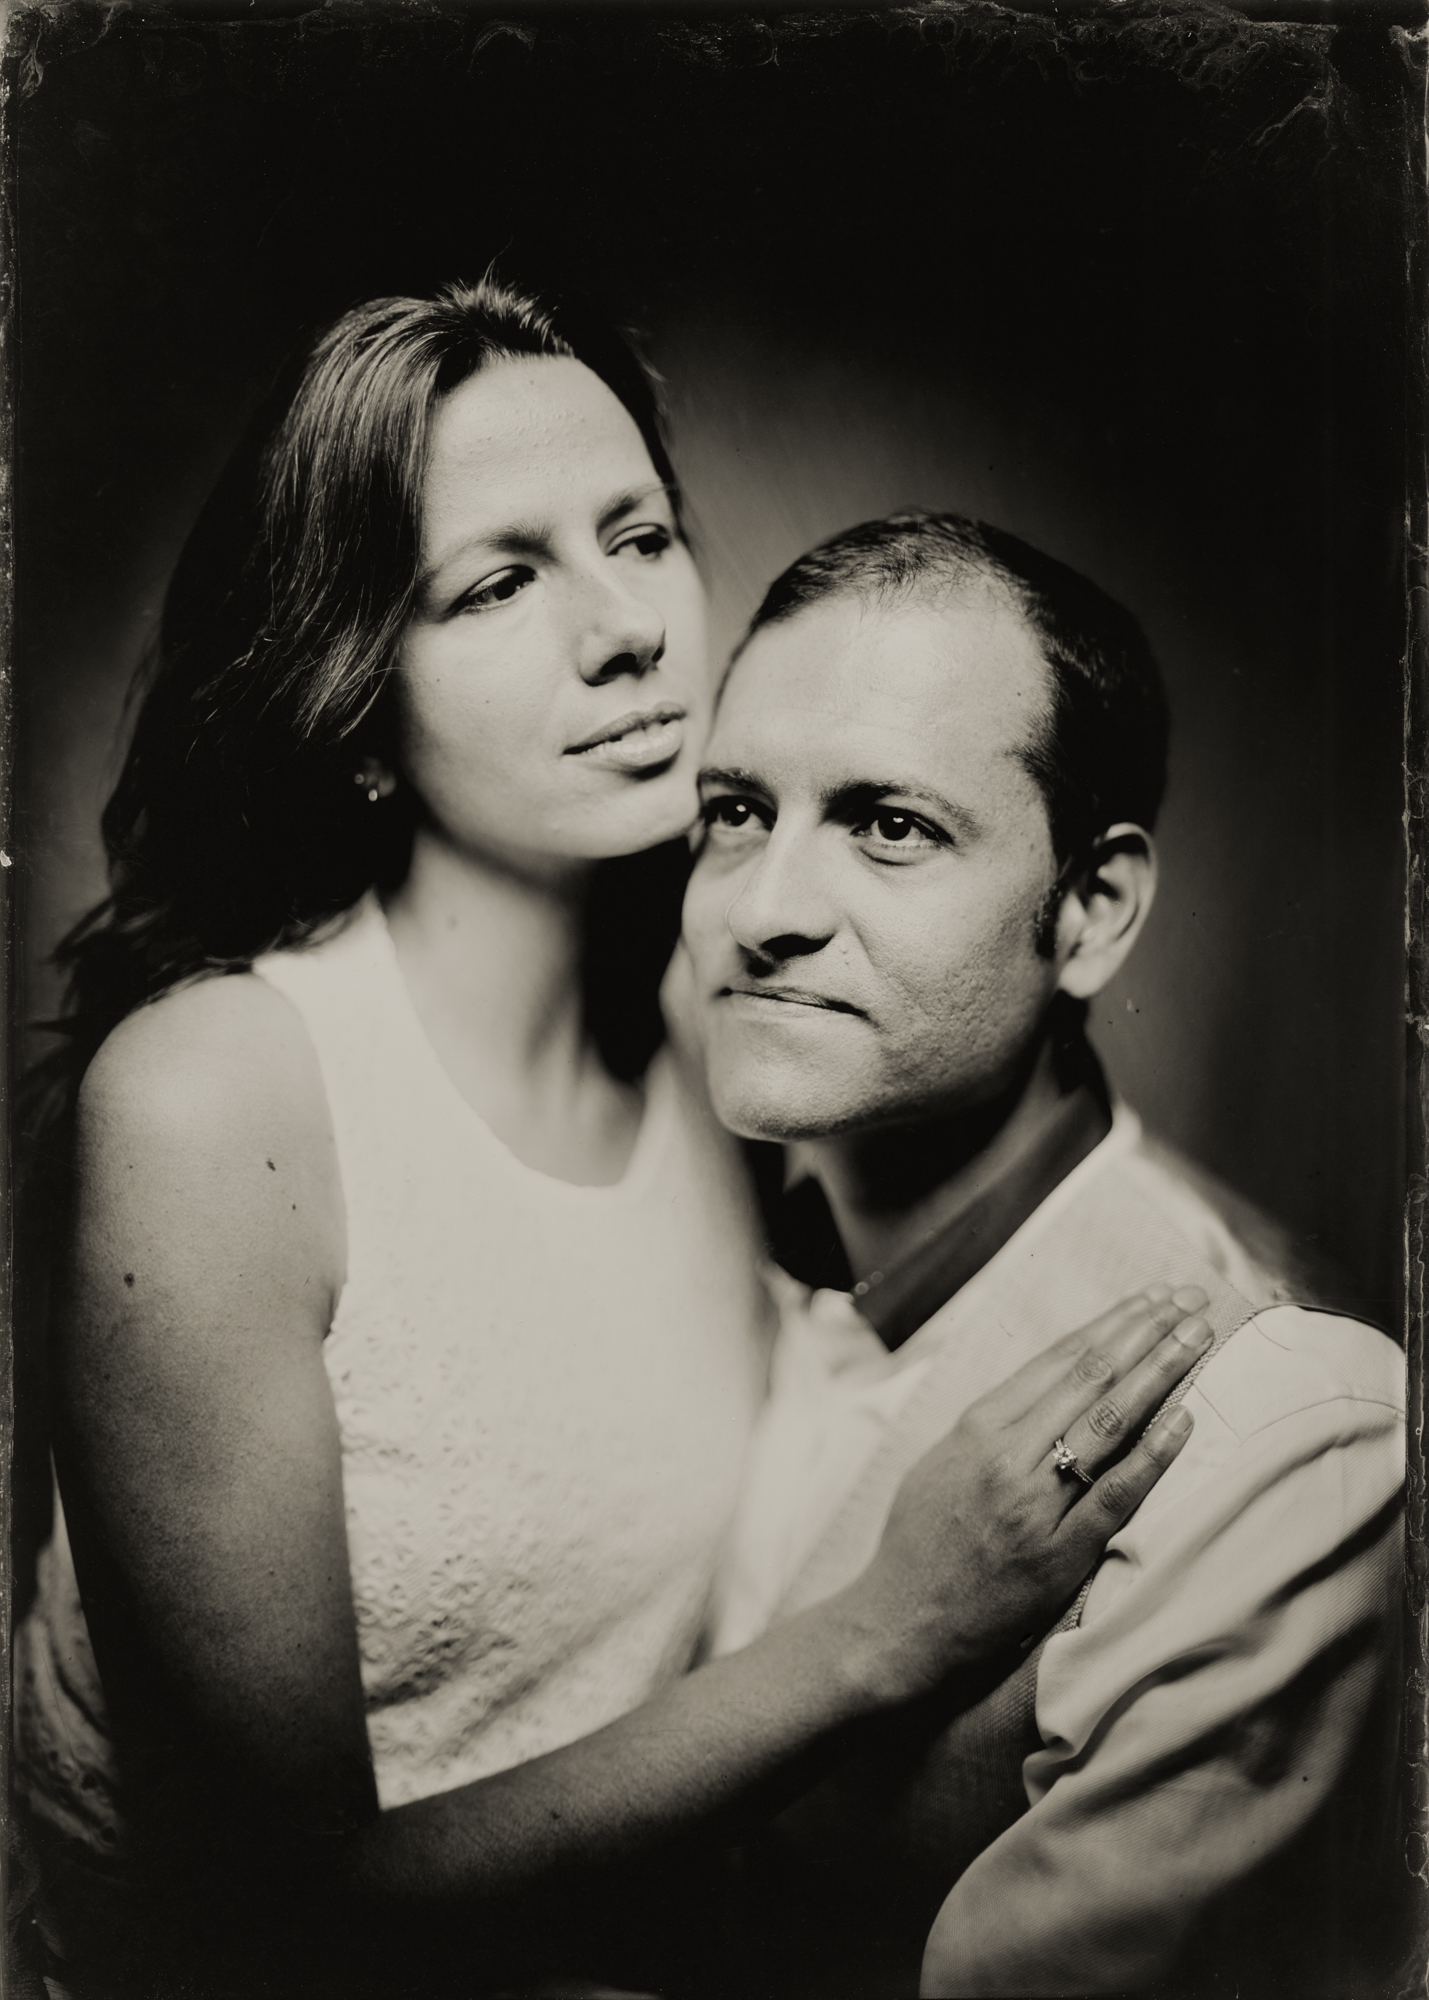 Copy of 5x7 Tintype